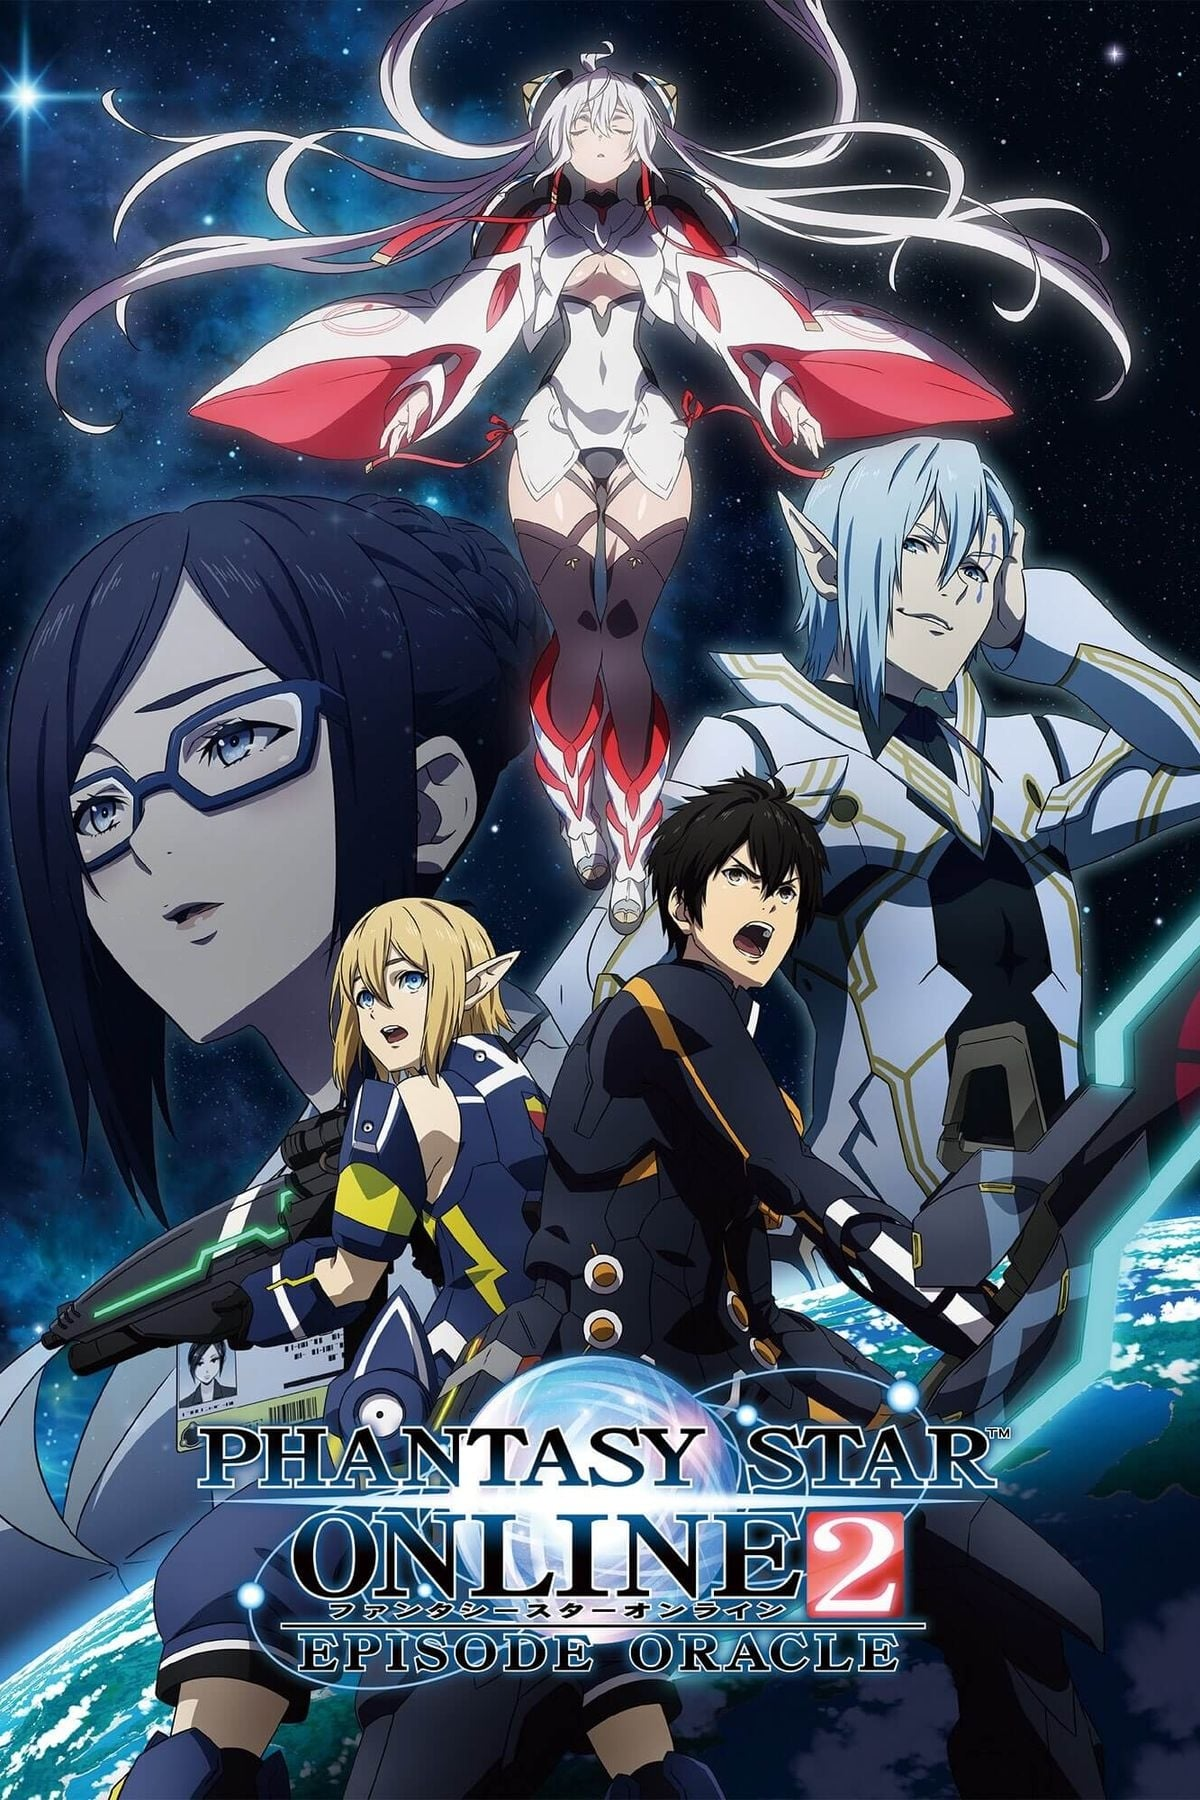 Phantasy Star Online 2: Episode Oracle Sub Indo